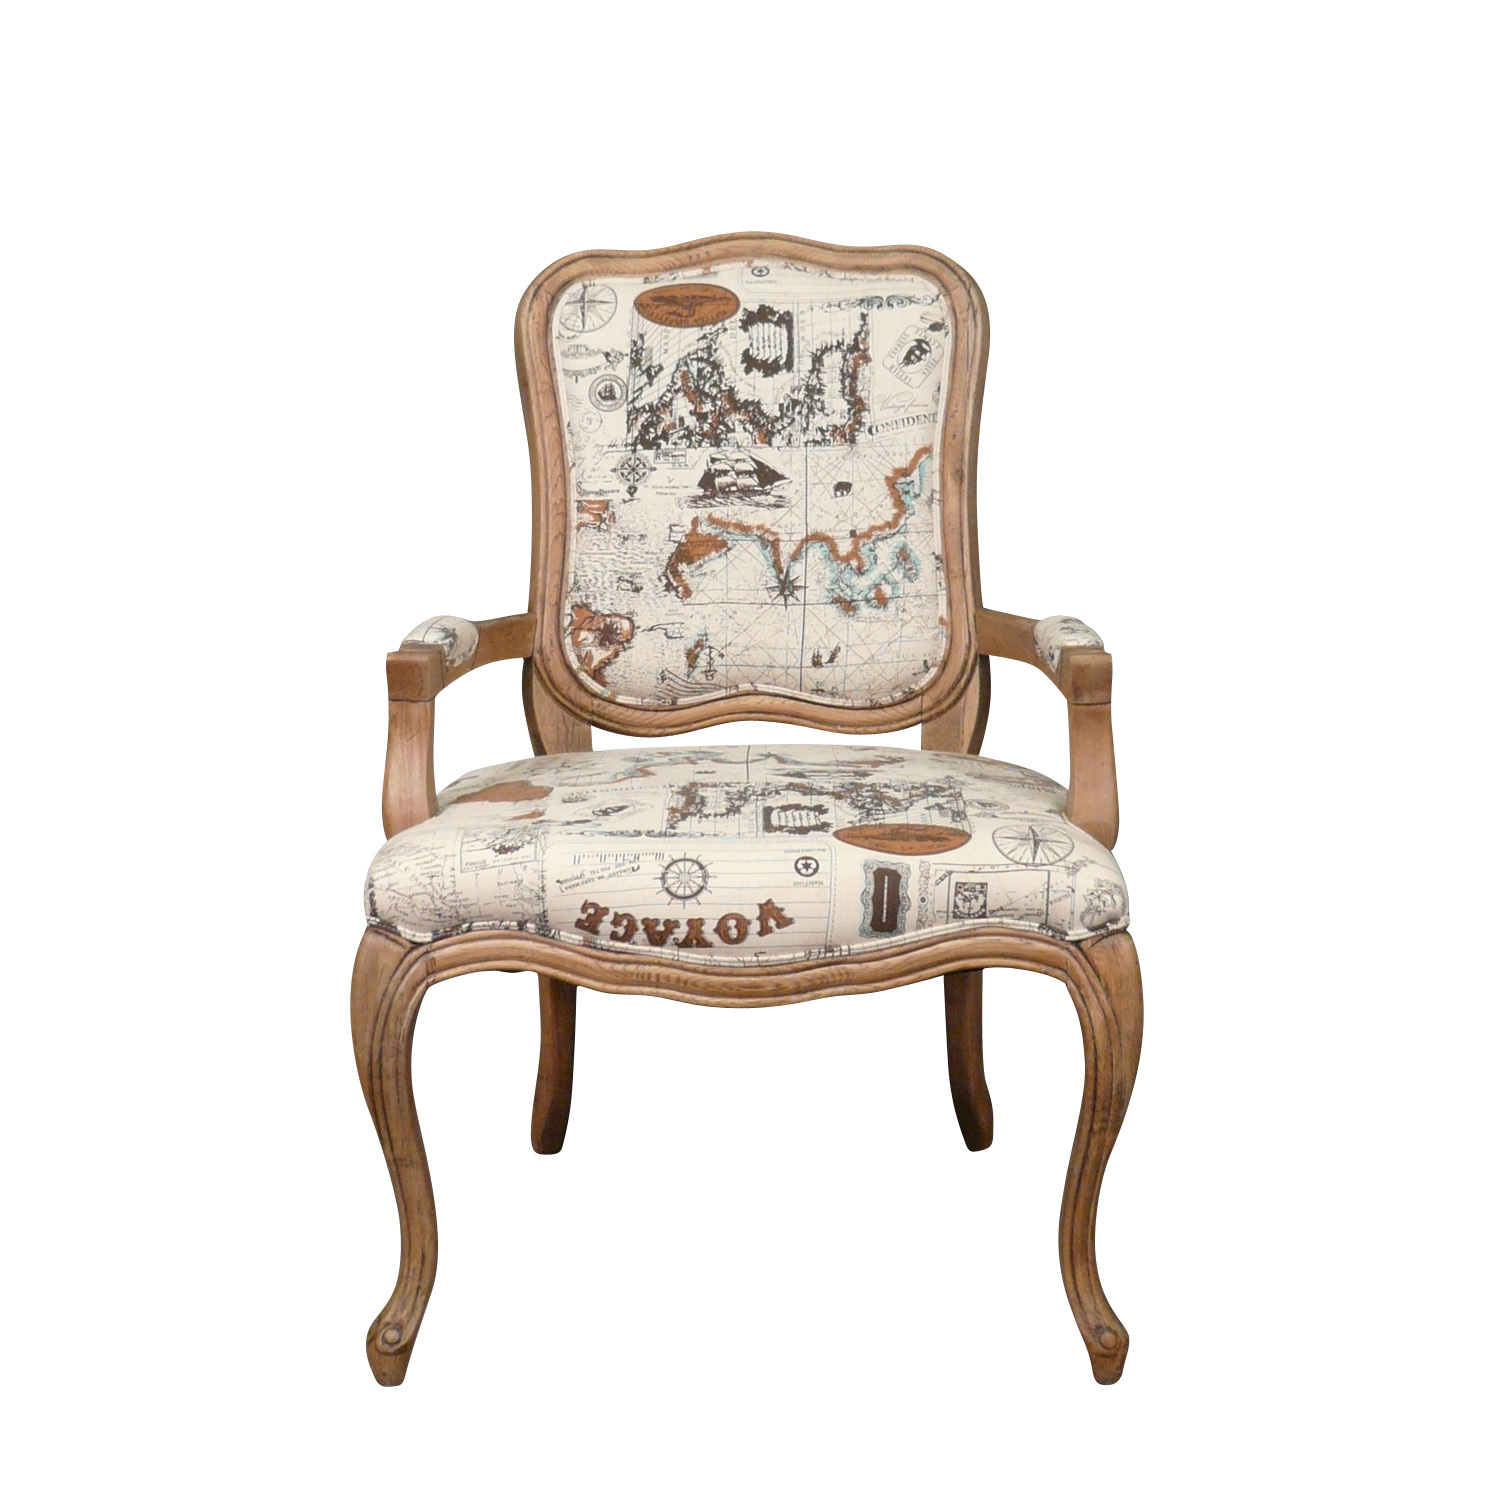 Louis xv armchair photo gallery louis xv furniture - Meuble style louis xv ...